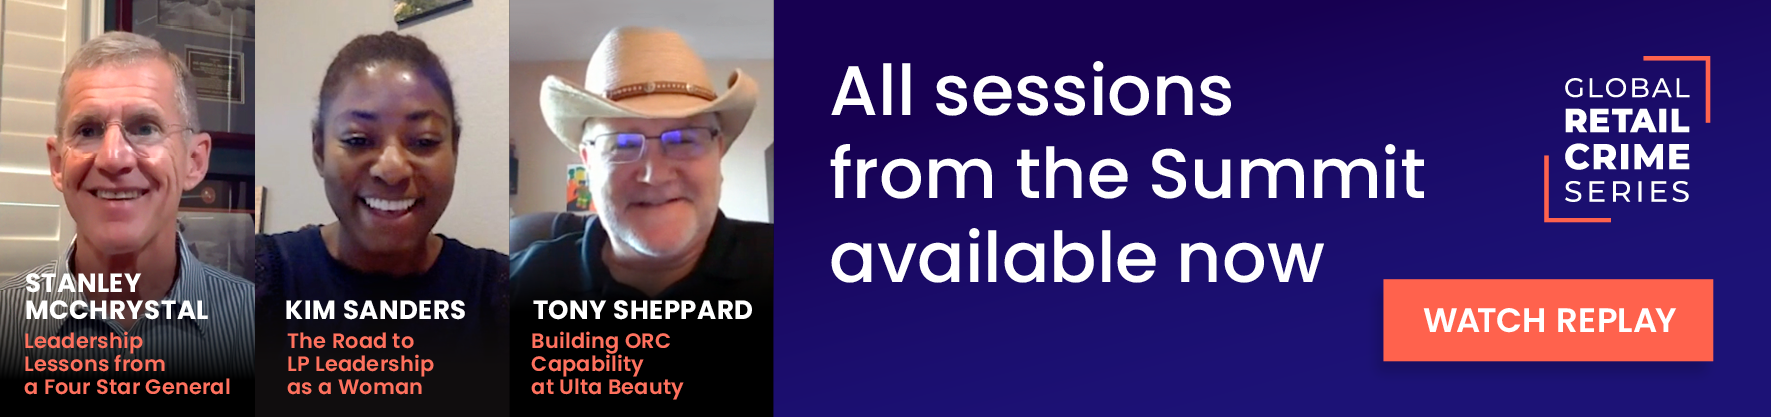 All sessions from the Summit available now